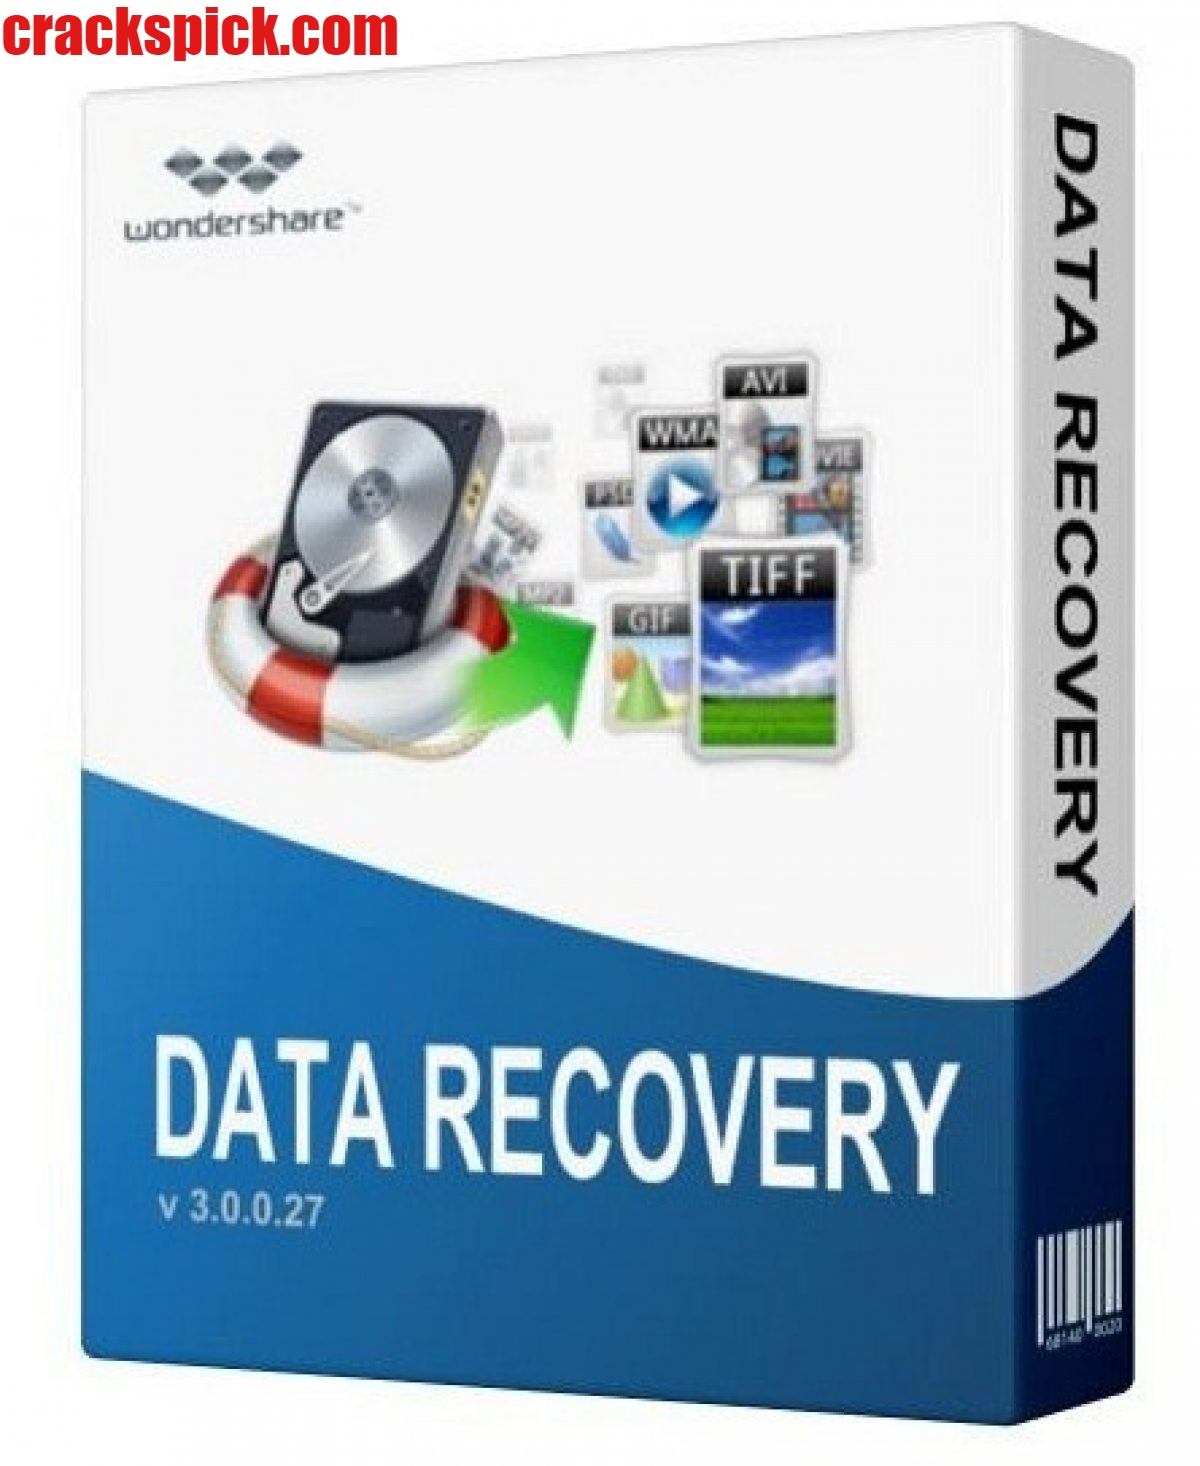 Wondershare Data Recovery cover windroidmedia.com 1200x1466 1